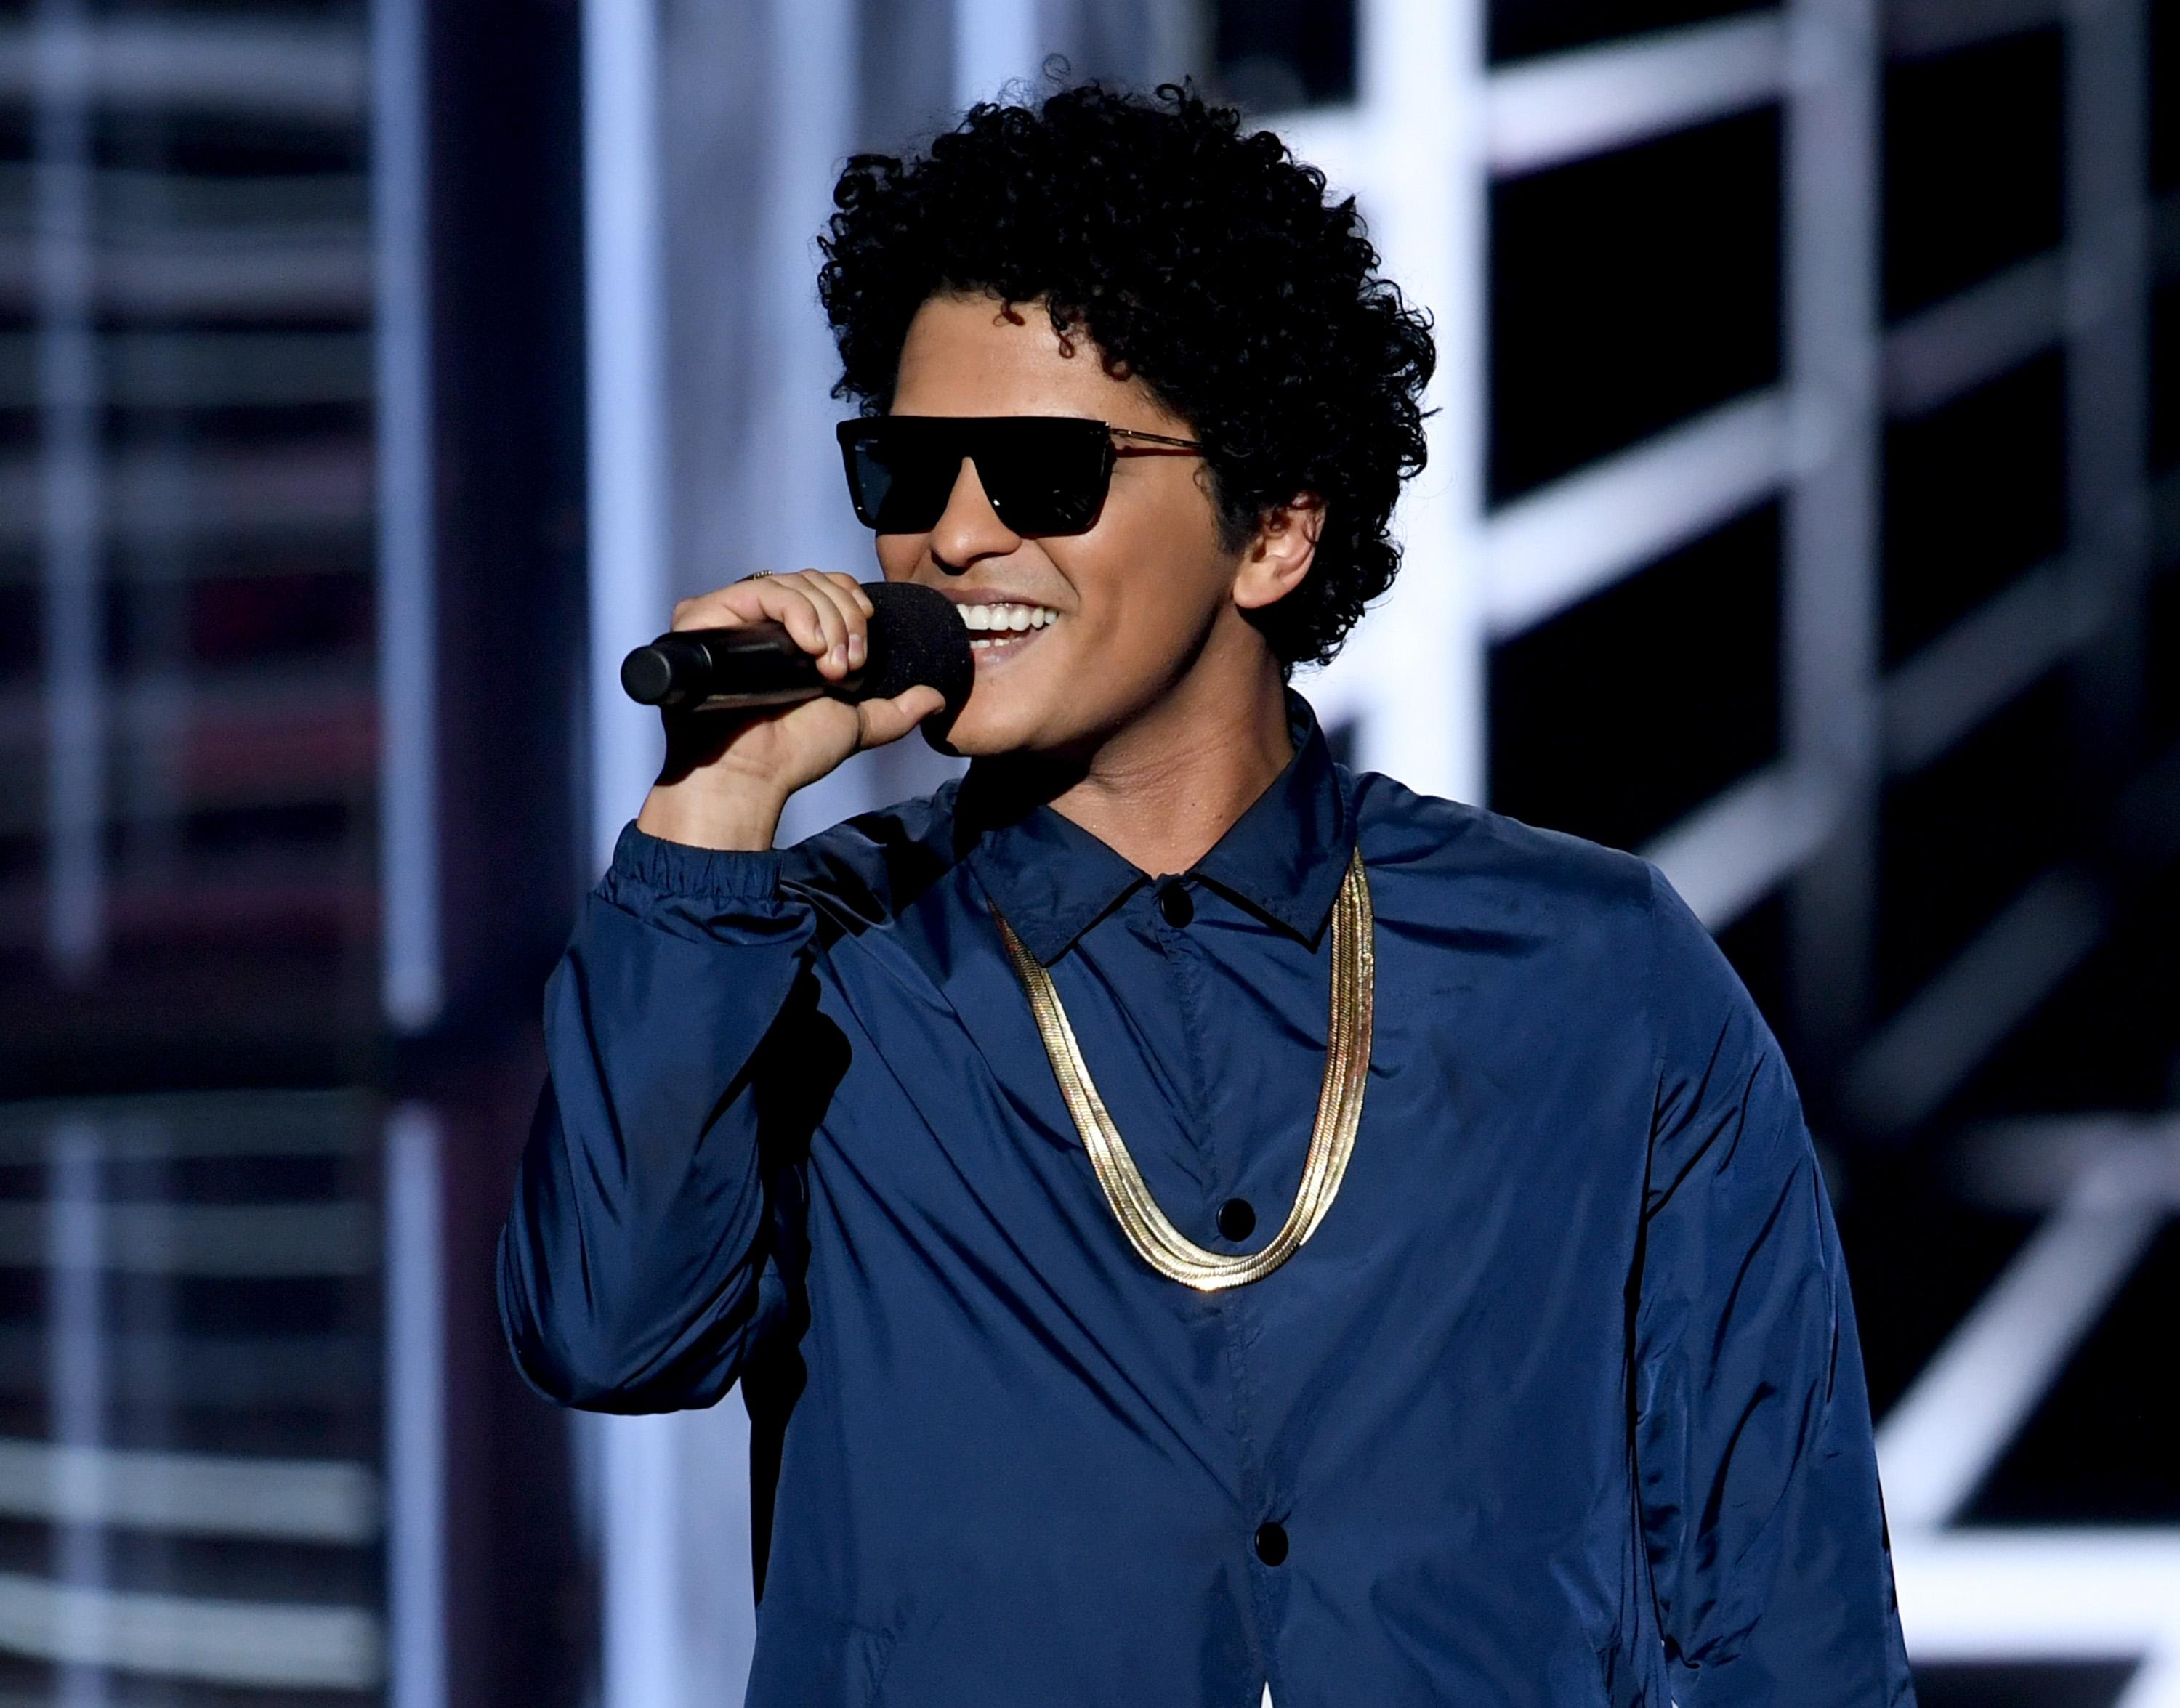 Bruno Mars is set to perform at the US Grand Prix in Texas